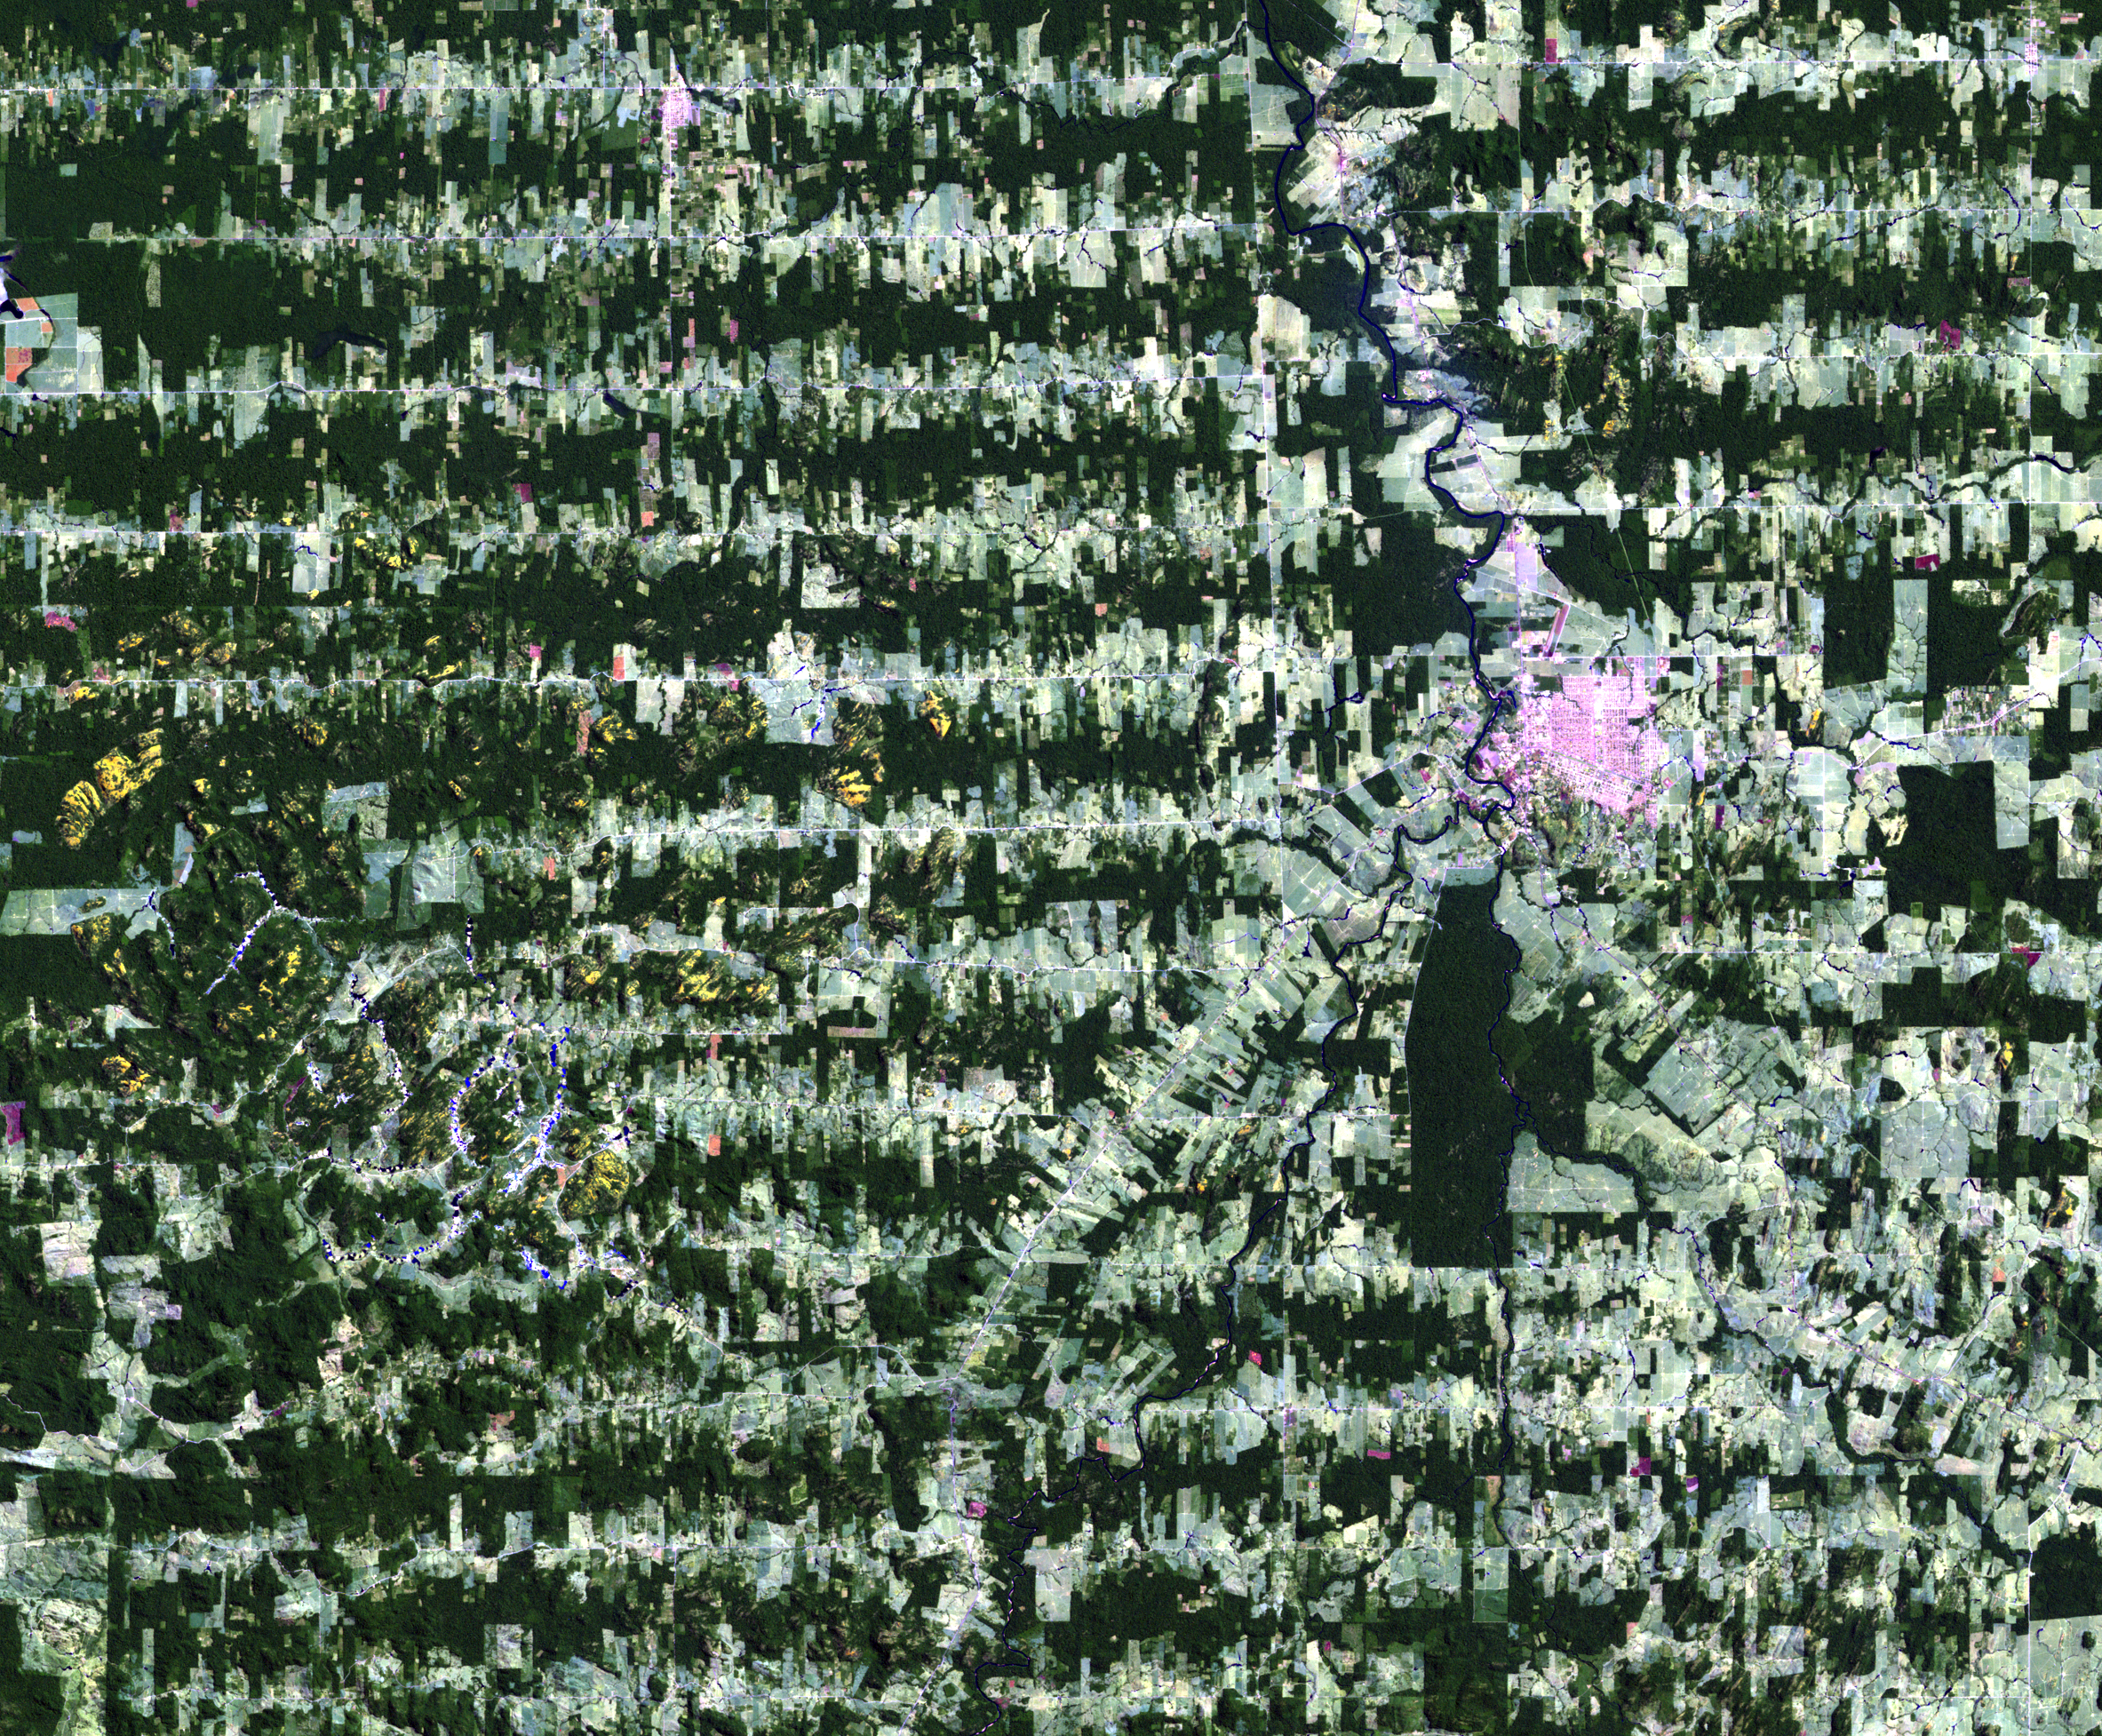 Aug. 10, 2001, Landsat 5 (path/row 232/67) — Ariquemes, Brazil